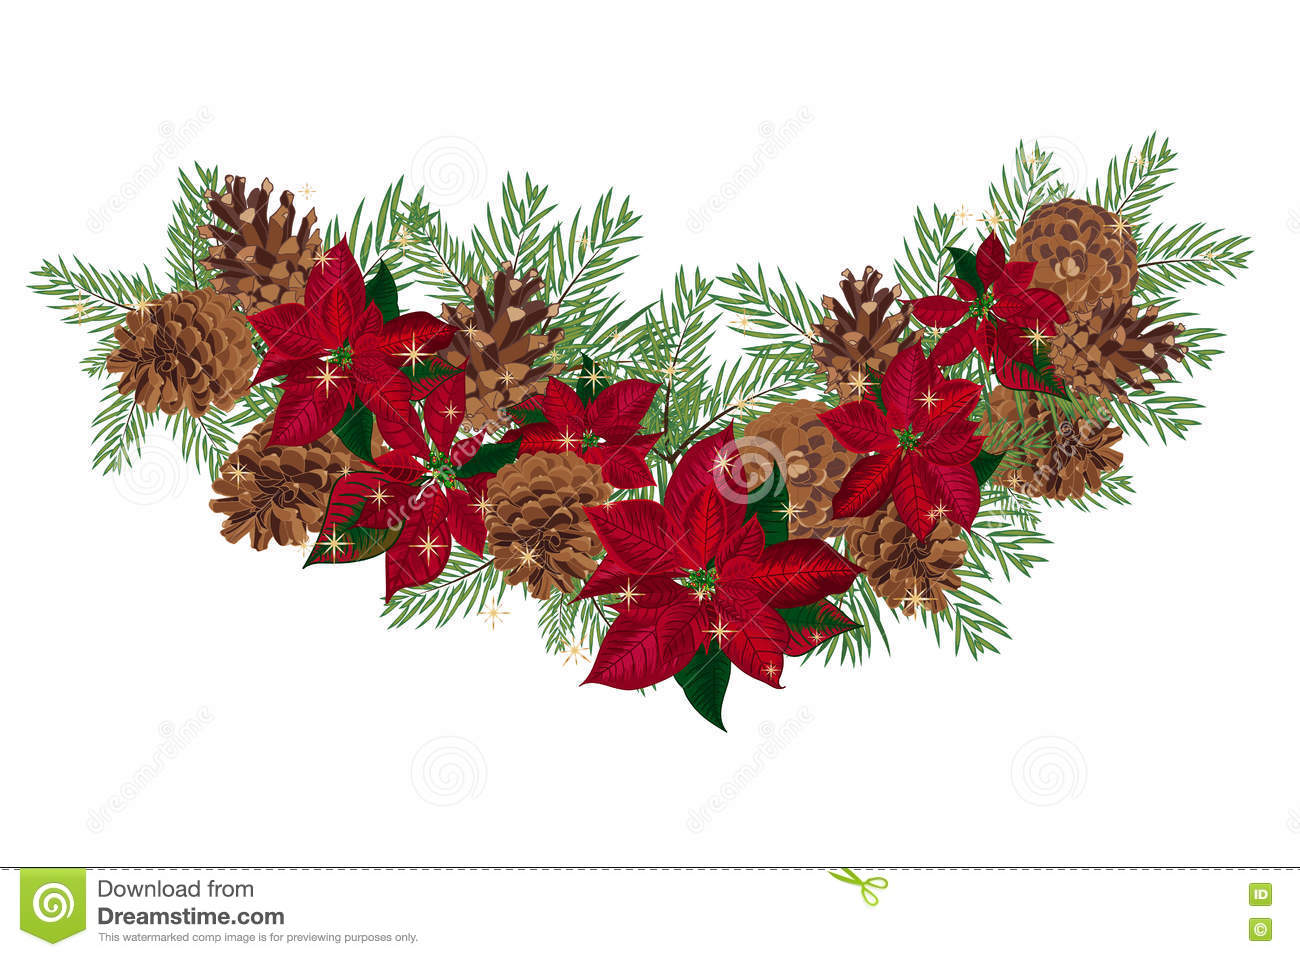 Vintage christmas garland with pine cones and poinsettia